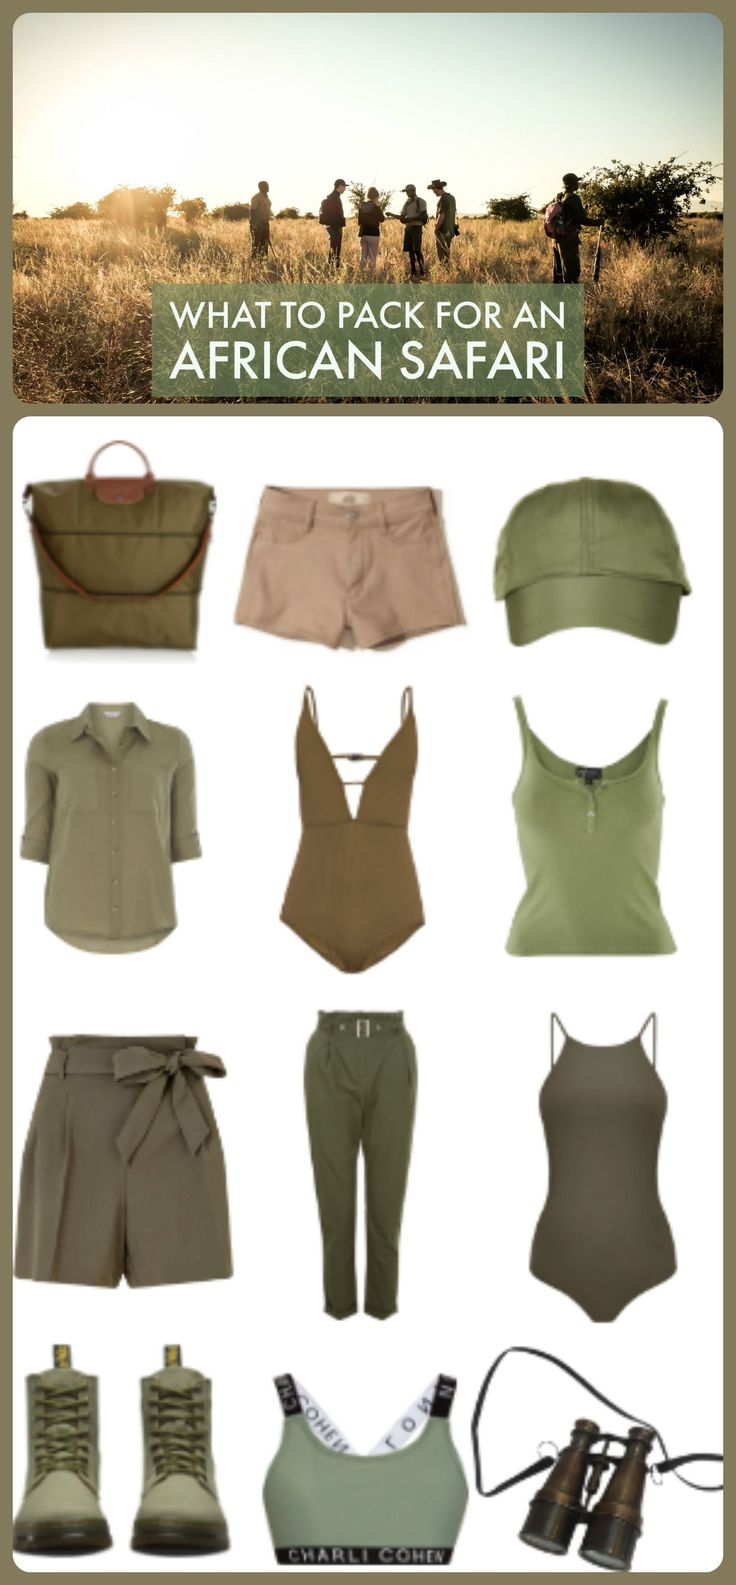 All you need to pack for a great African safari! From walking boots to safari hats this is all you need for safari's in Tanzania, Kenya, South Africa and beyond.